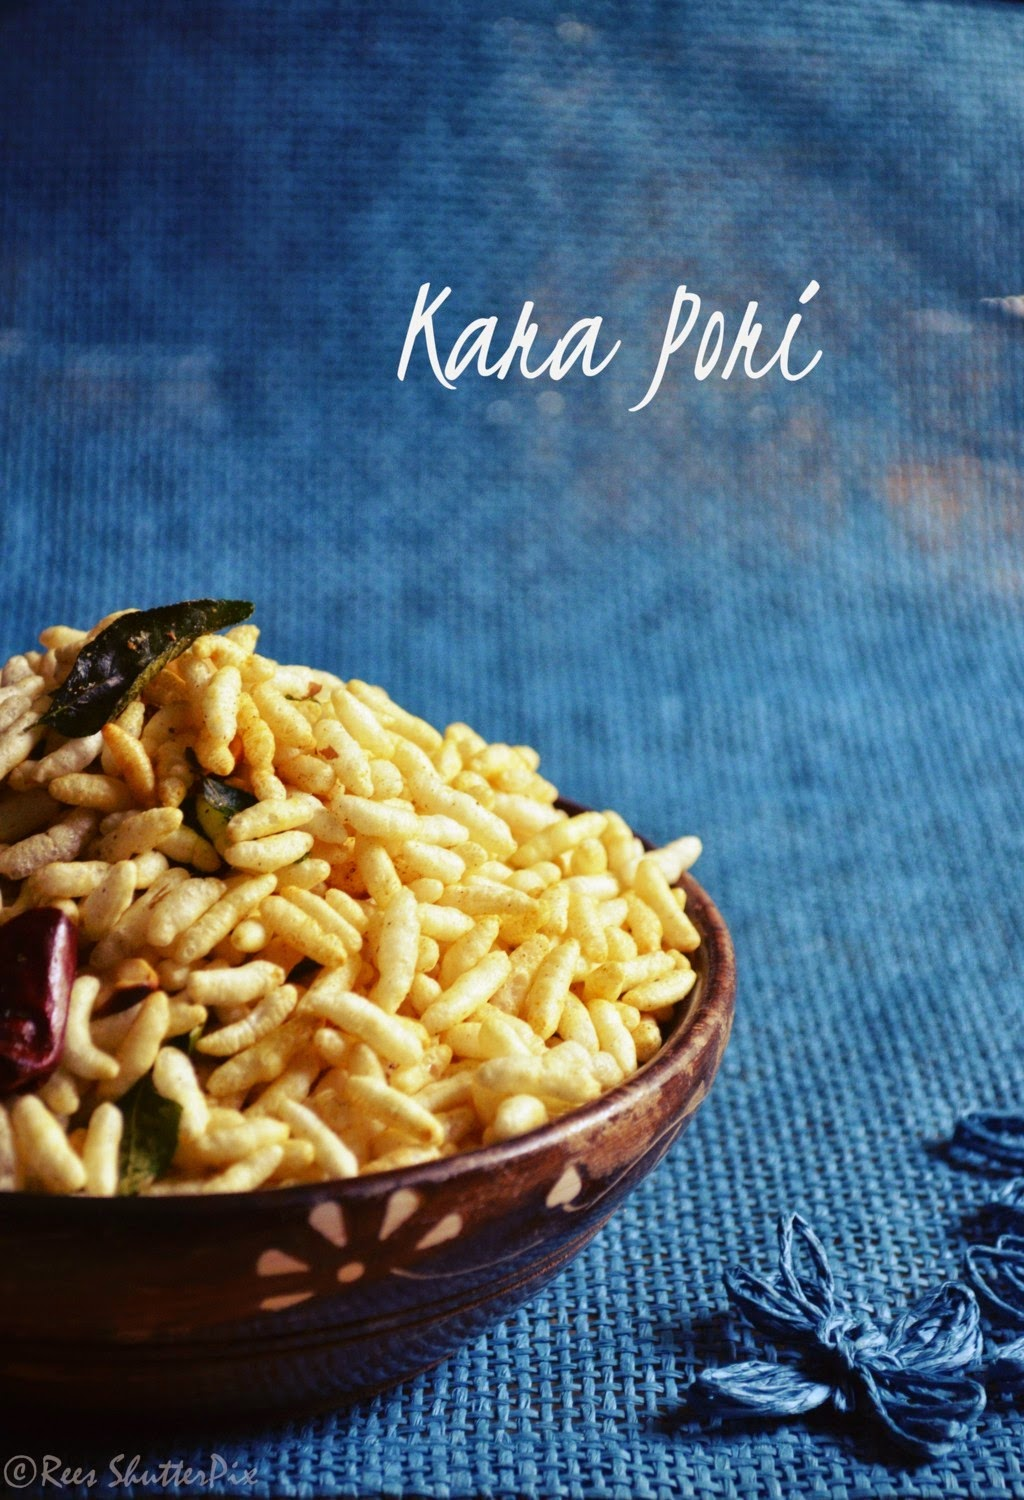 kara pori,kara pori recipe,masala kara pori,make kara pori,how to make masala kara pori,beach style pori,beach style pori kadalai,how to prepare kara pori,spicy murmura,spicy puffed rice